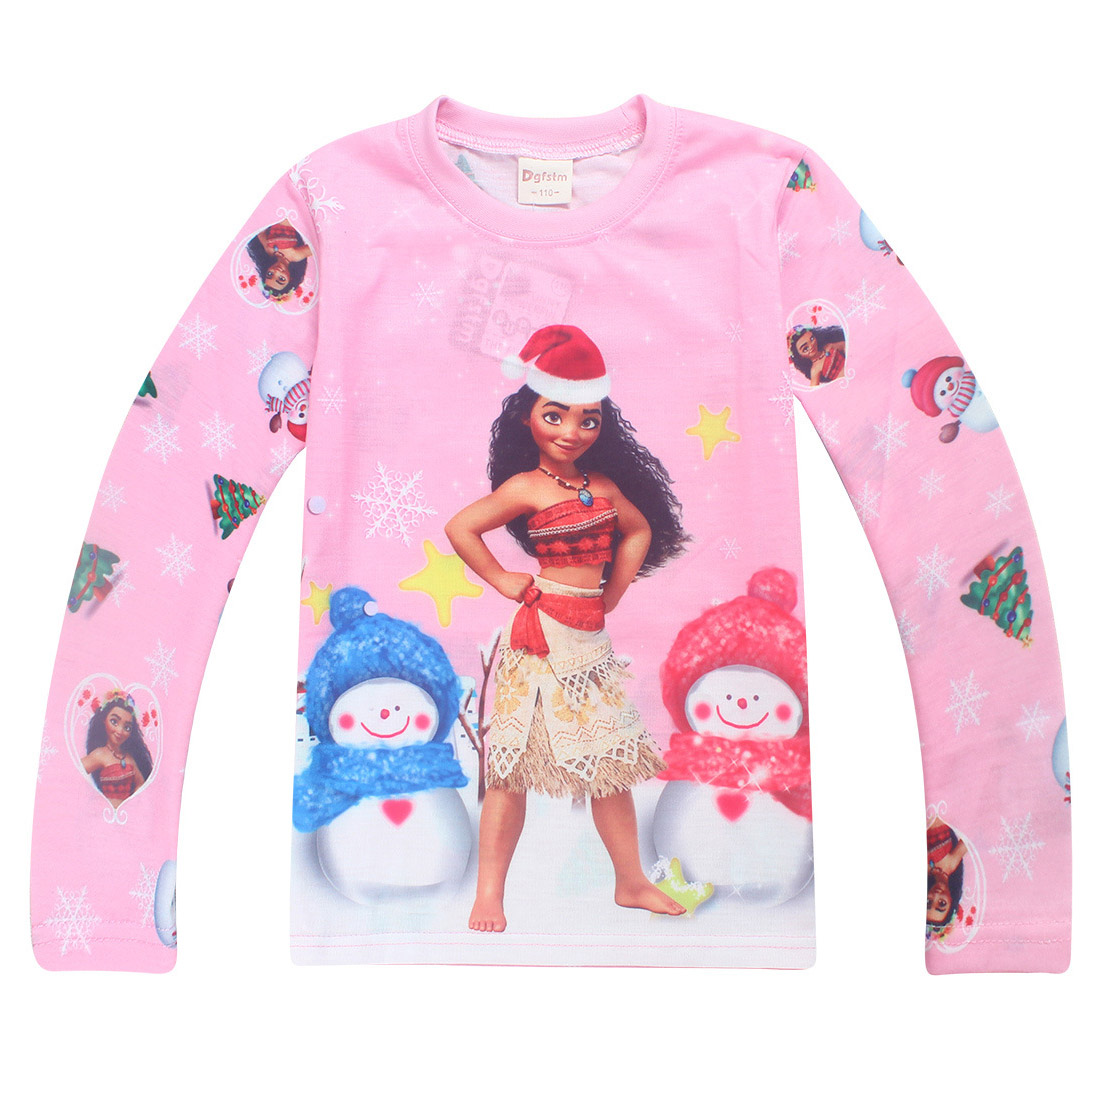 Kids Girls Pajamas Sets Princess Pyjamas Children Christmas Pijama Moana Vaiana Sleepwear Home Clothing Cartoon Cotton Clothing